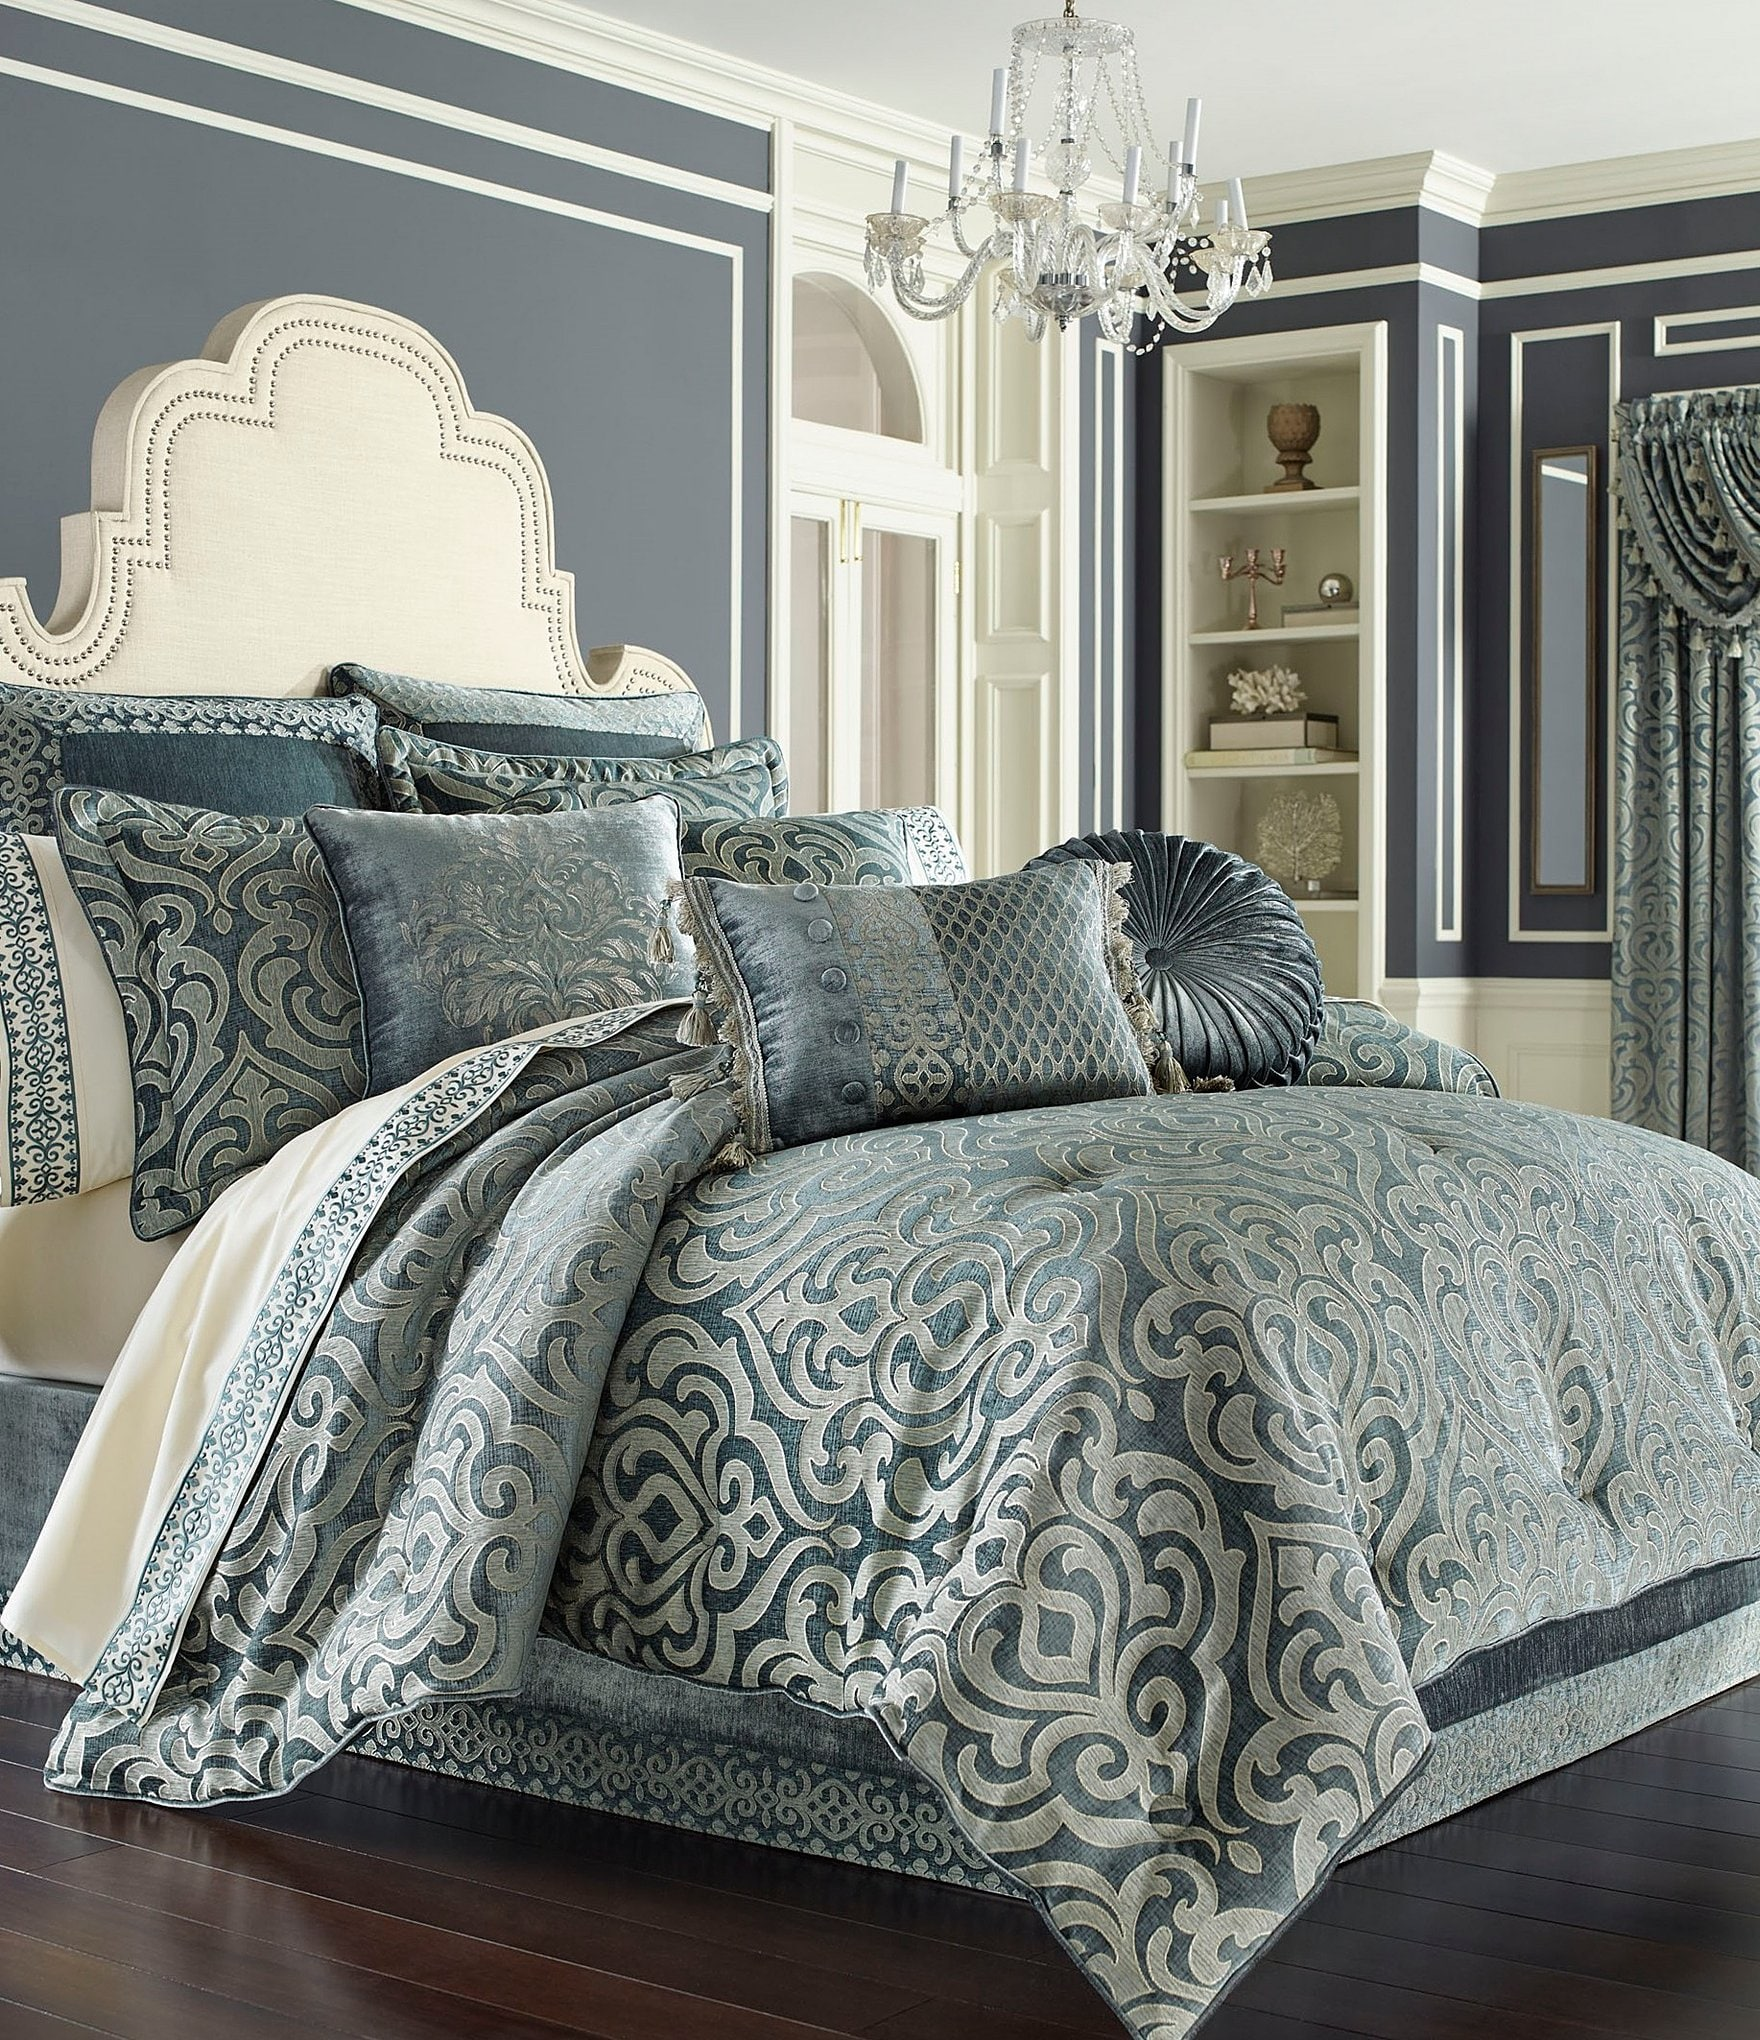 designs stock brown set cover quilt comforter impressive ideas bed wonderful teal comforters ruffle and dark grey gray bedding bedroom